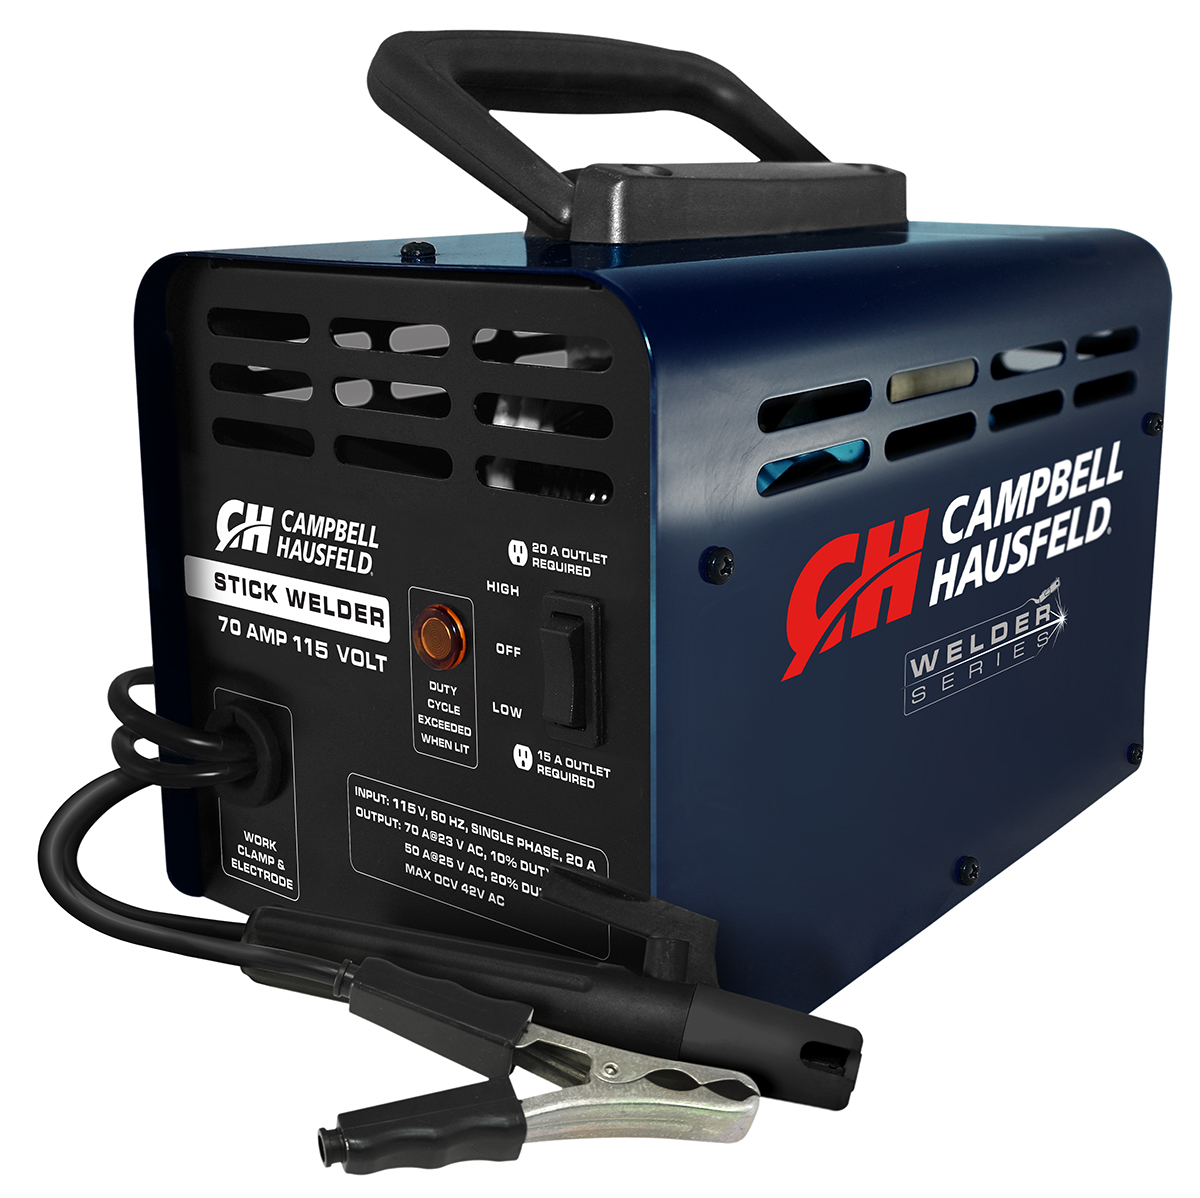 Campbell Hausfeld 115V Arc/Stick Welder (WS099001AV) product image center